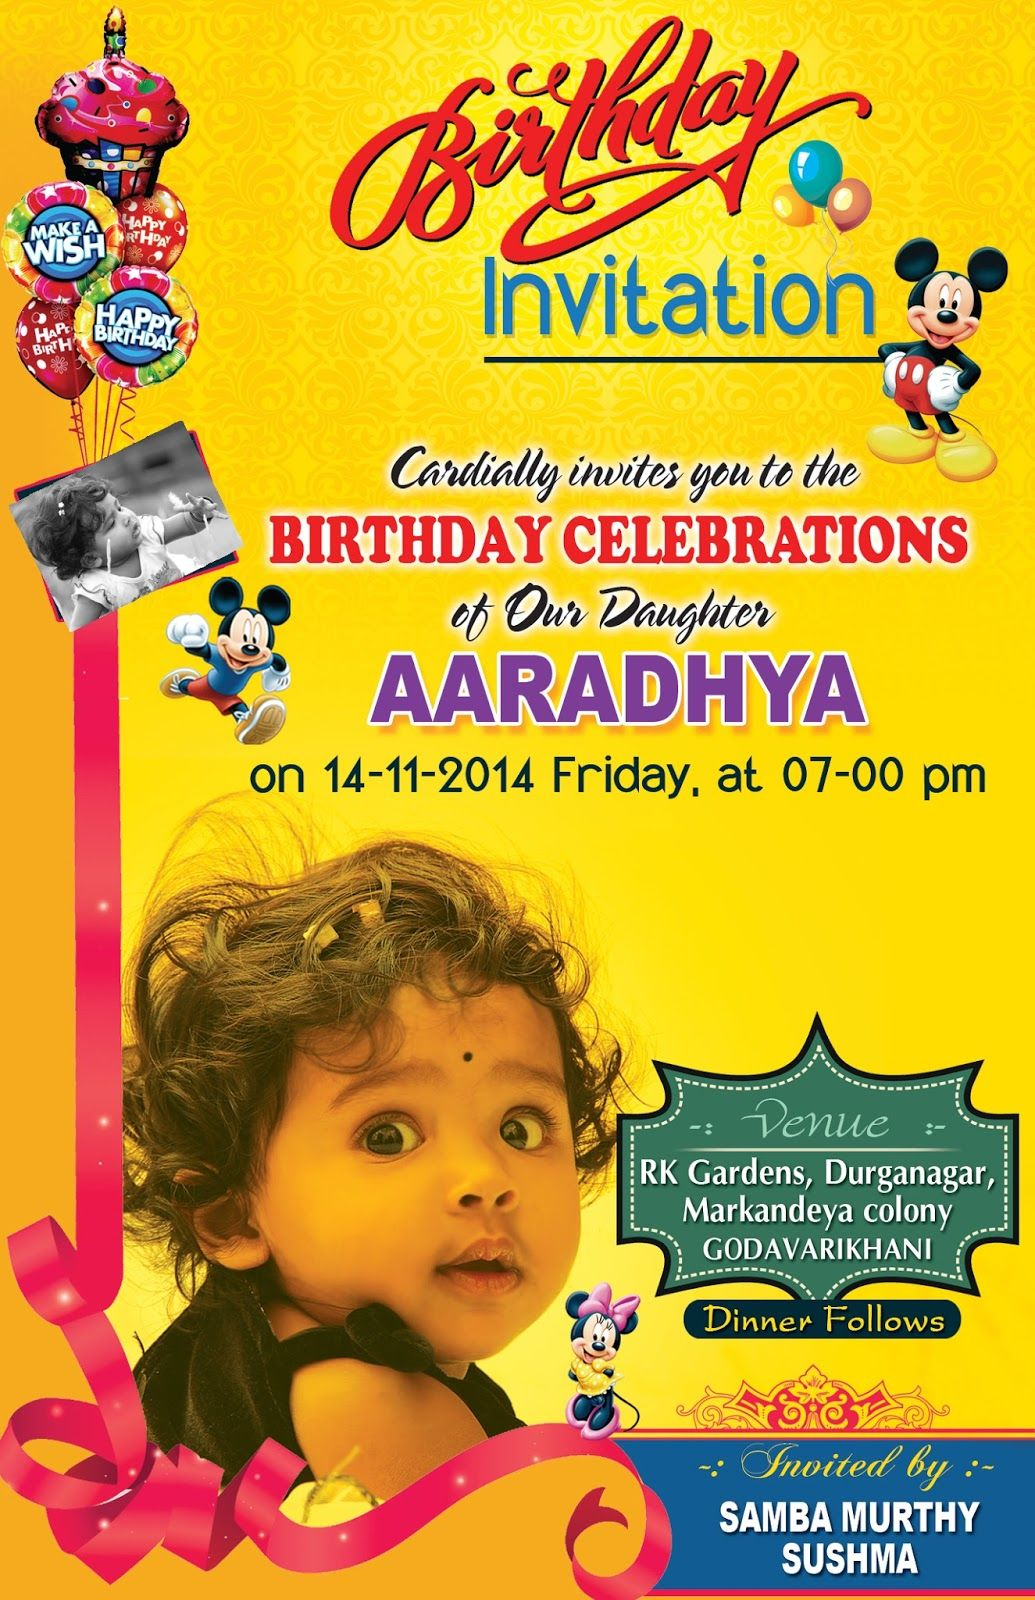 birthdayinvitationcardpsdtemplatefree – Invitation Greetings for Birthdays